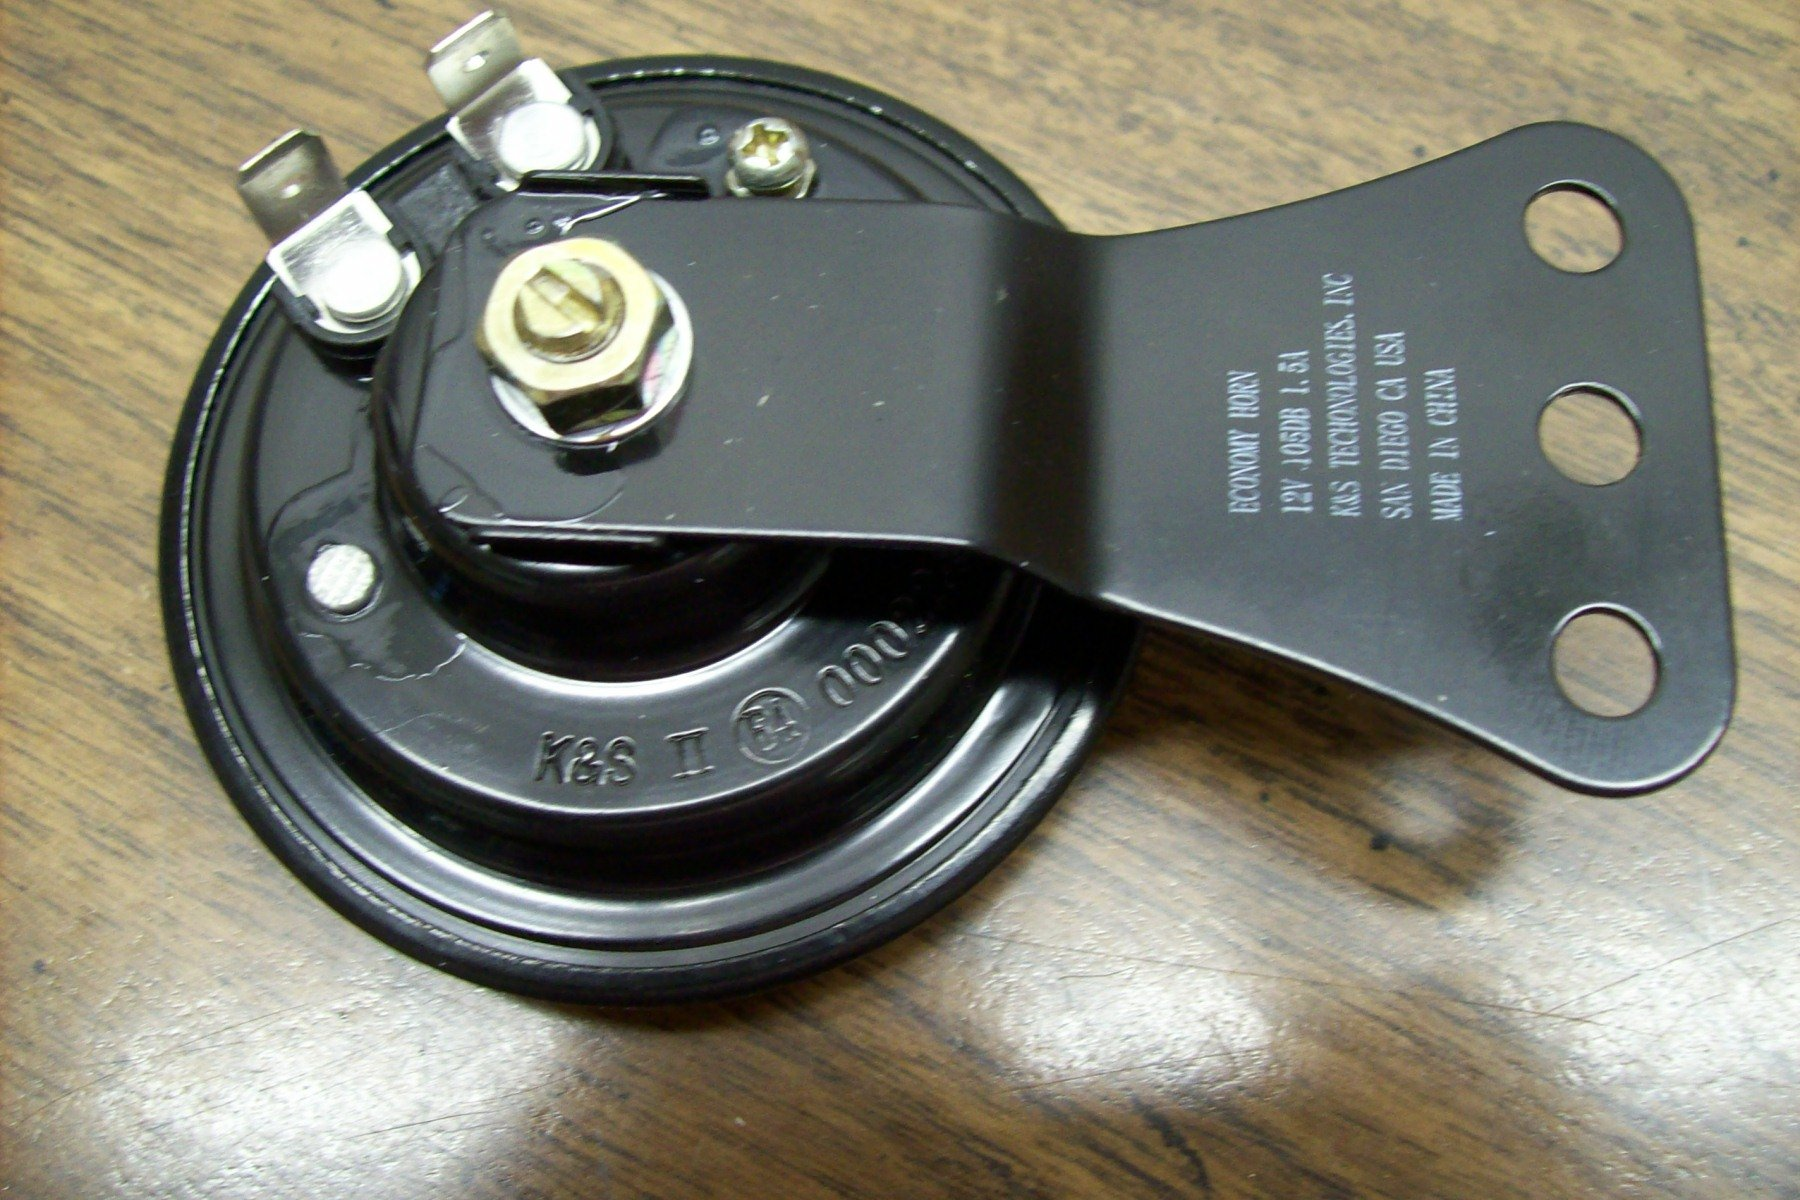 12 volt Universal Economy Horn for small Bikes 023 by K&S (Image #1)